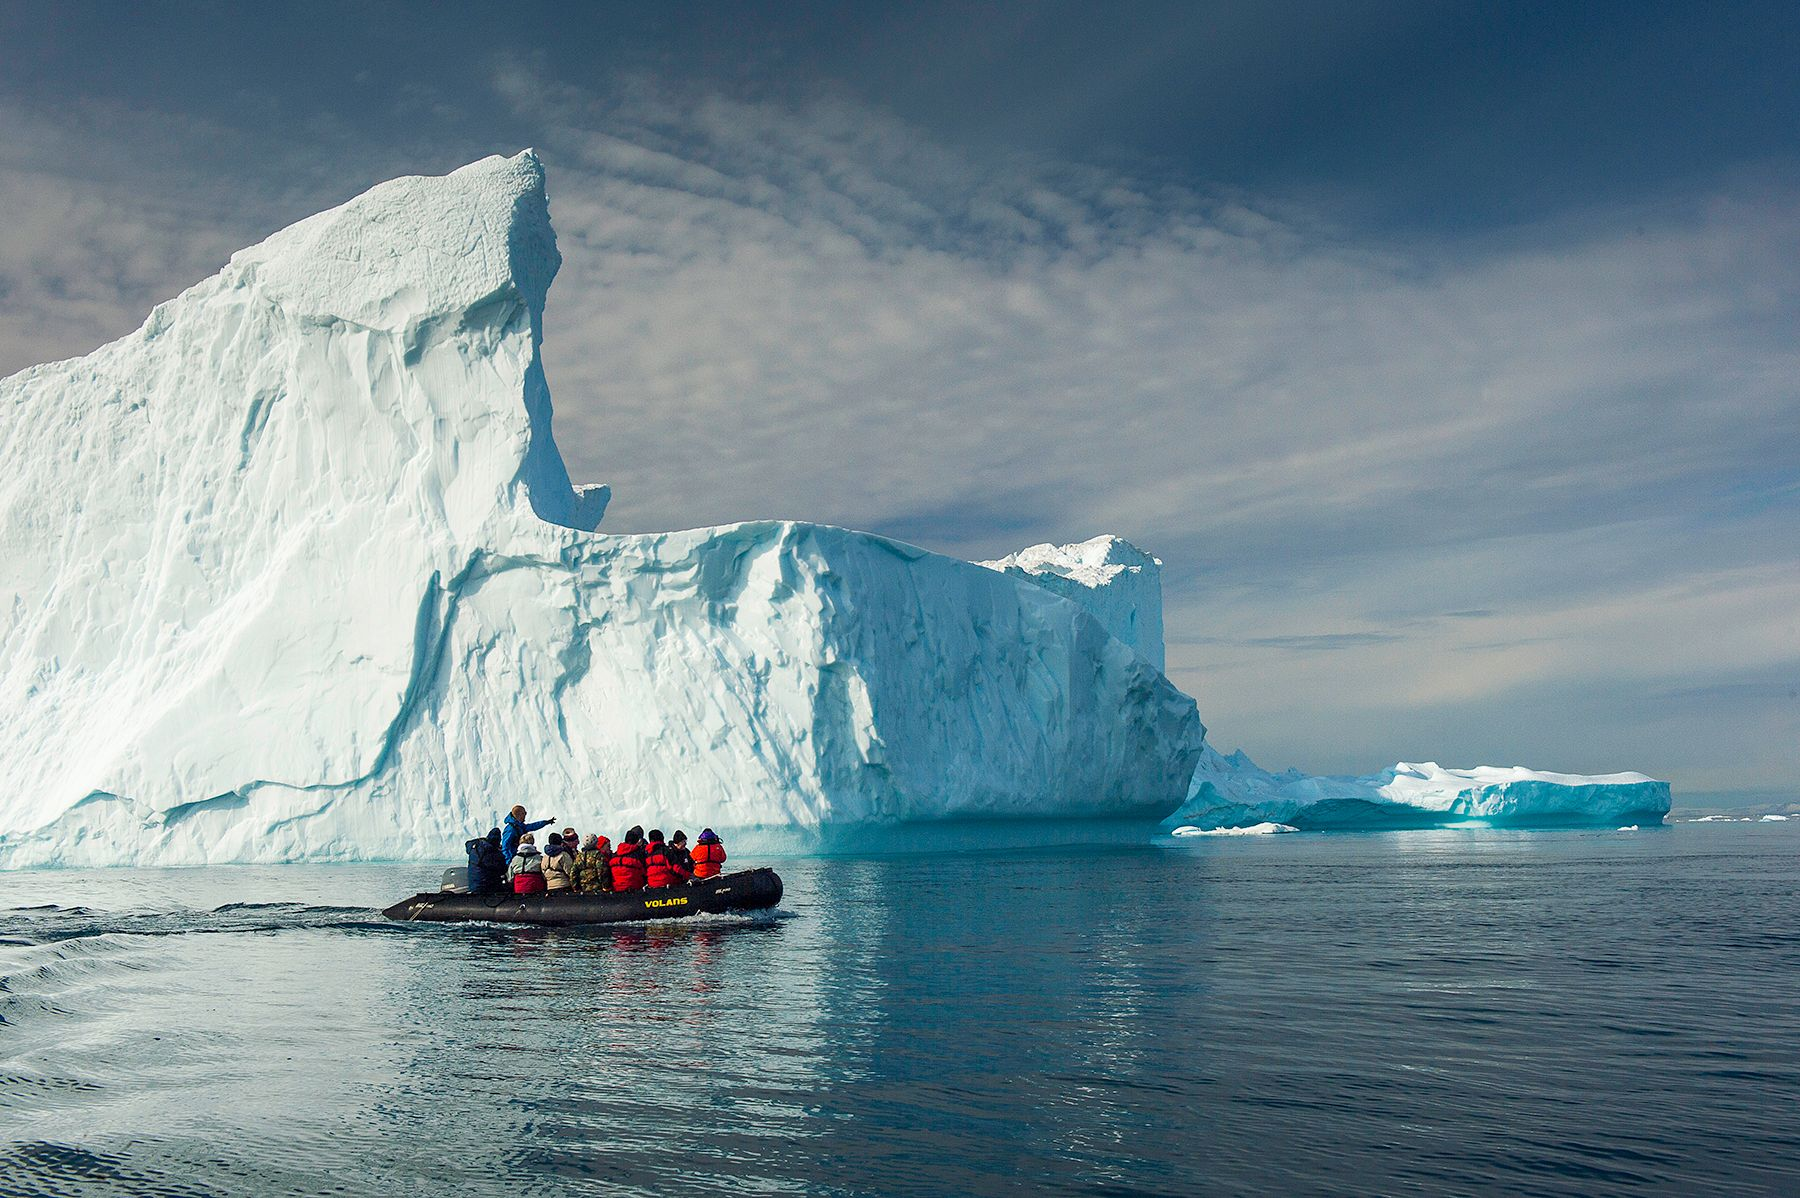 Greenland_Disko_Bay_9627_Mark_Edward_Harris.jpg